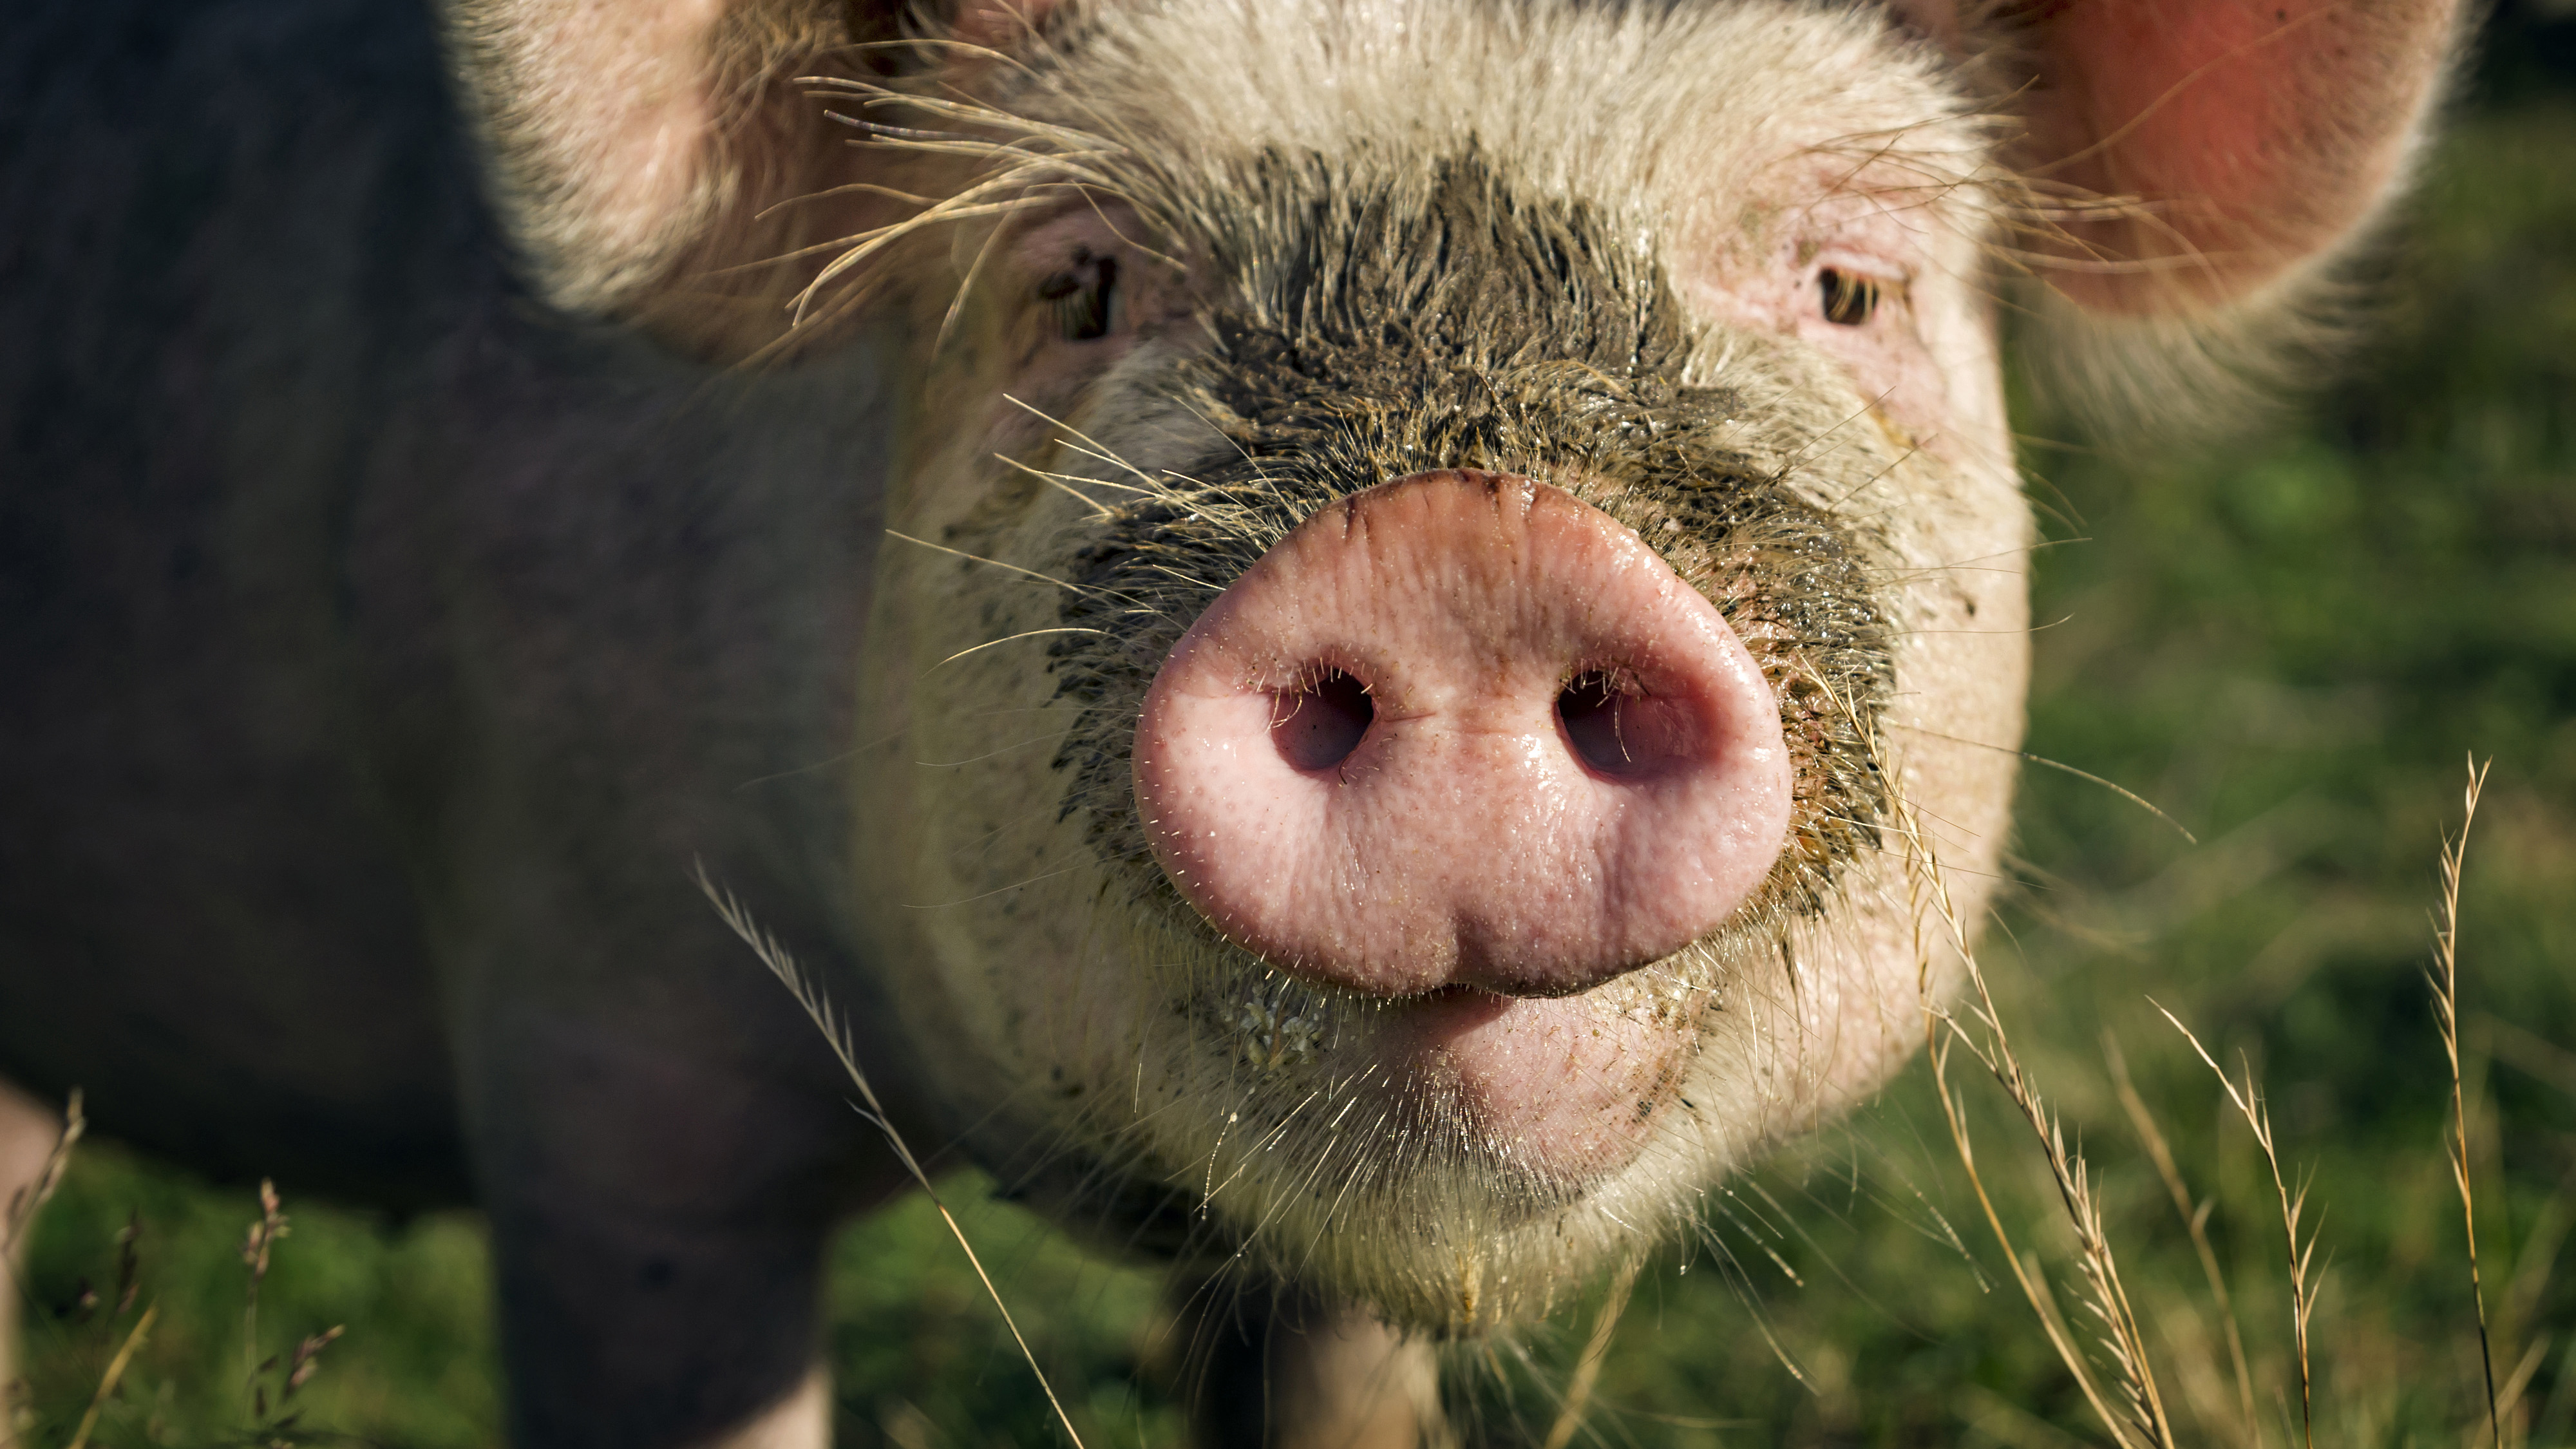 Close up photo of a pastured pig's face.